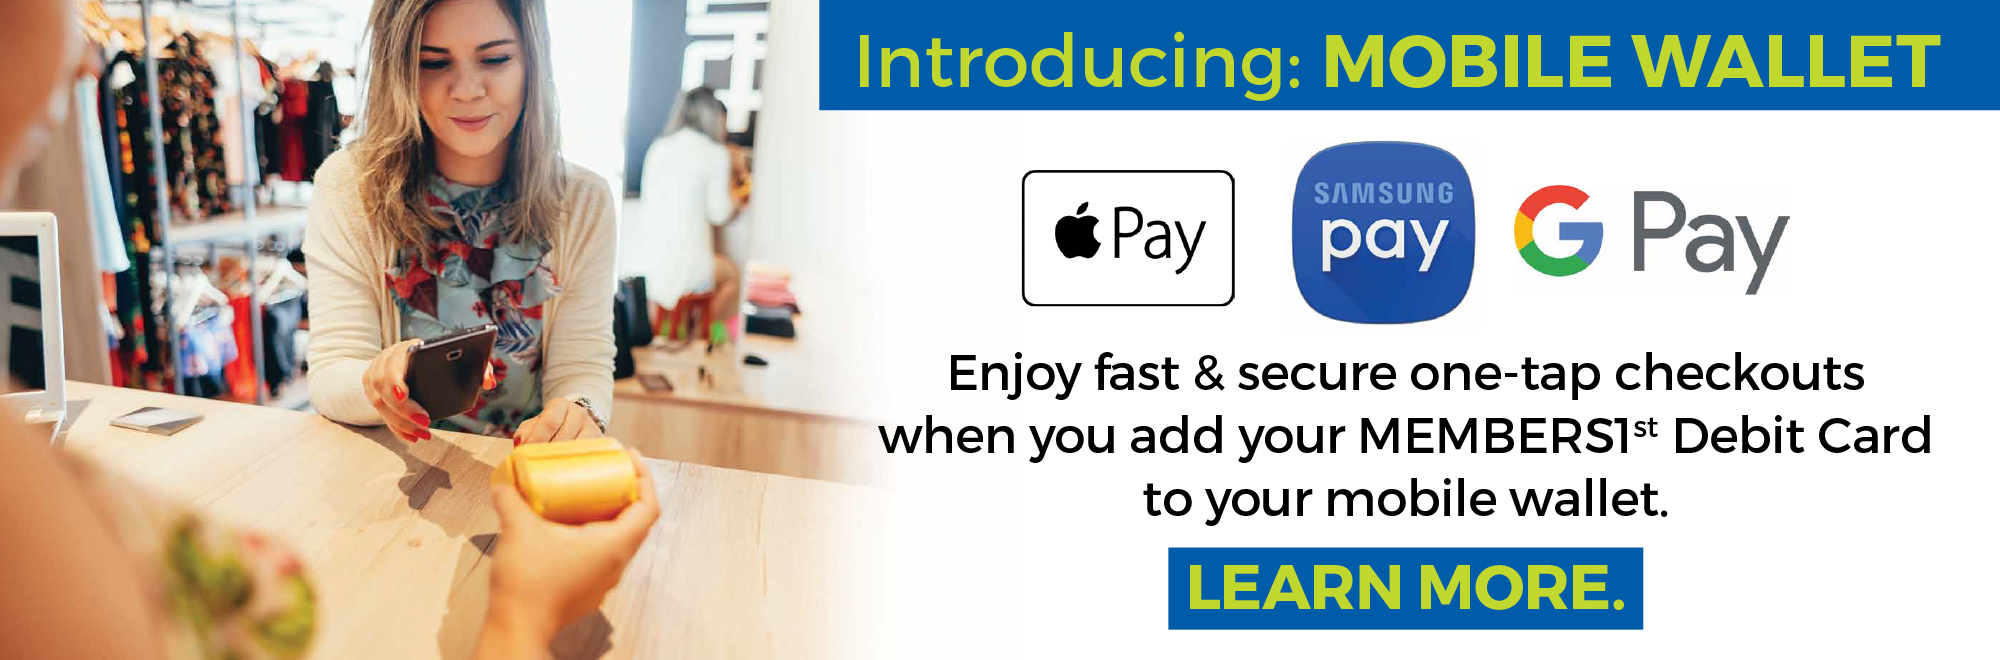 Add your MEMBERS1st debit card to your mobile wallet.